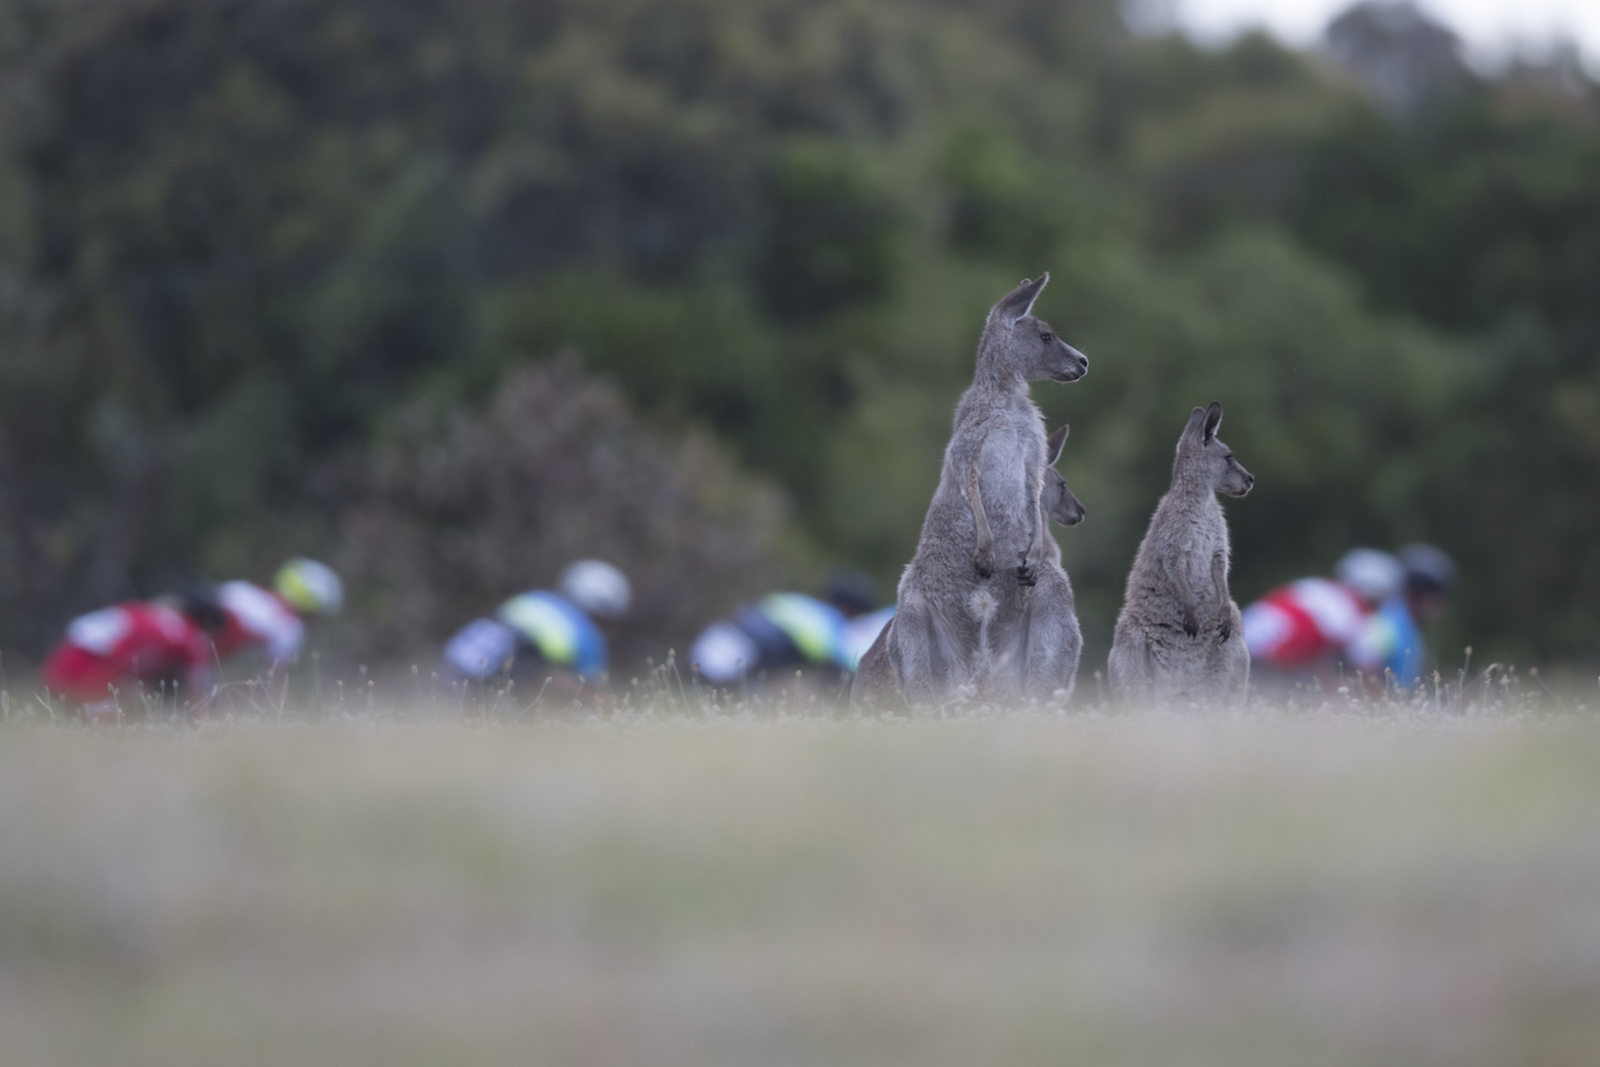 """Adrian Marshall, Australia. """"Kangaroos can be a regular feature in Canberra, Australia, especially at dusk. These three are keeping their eye on a criterium race at Stromlo Forest Park."""" DSLR. @adrian_capstone"""